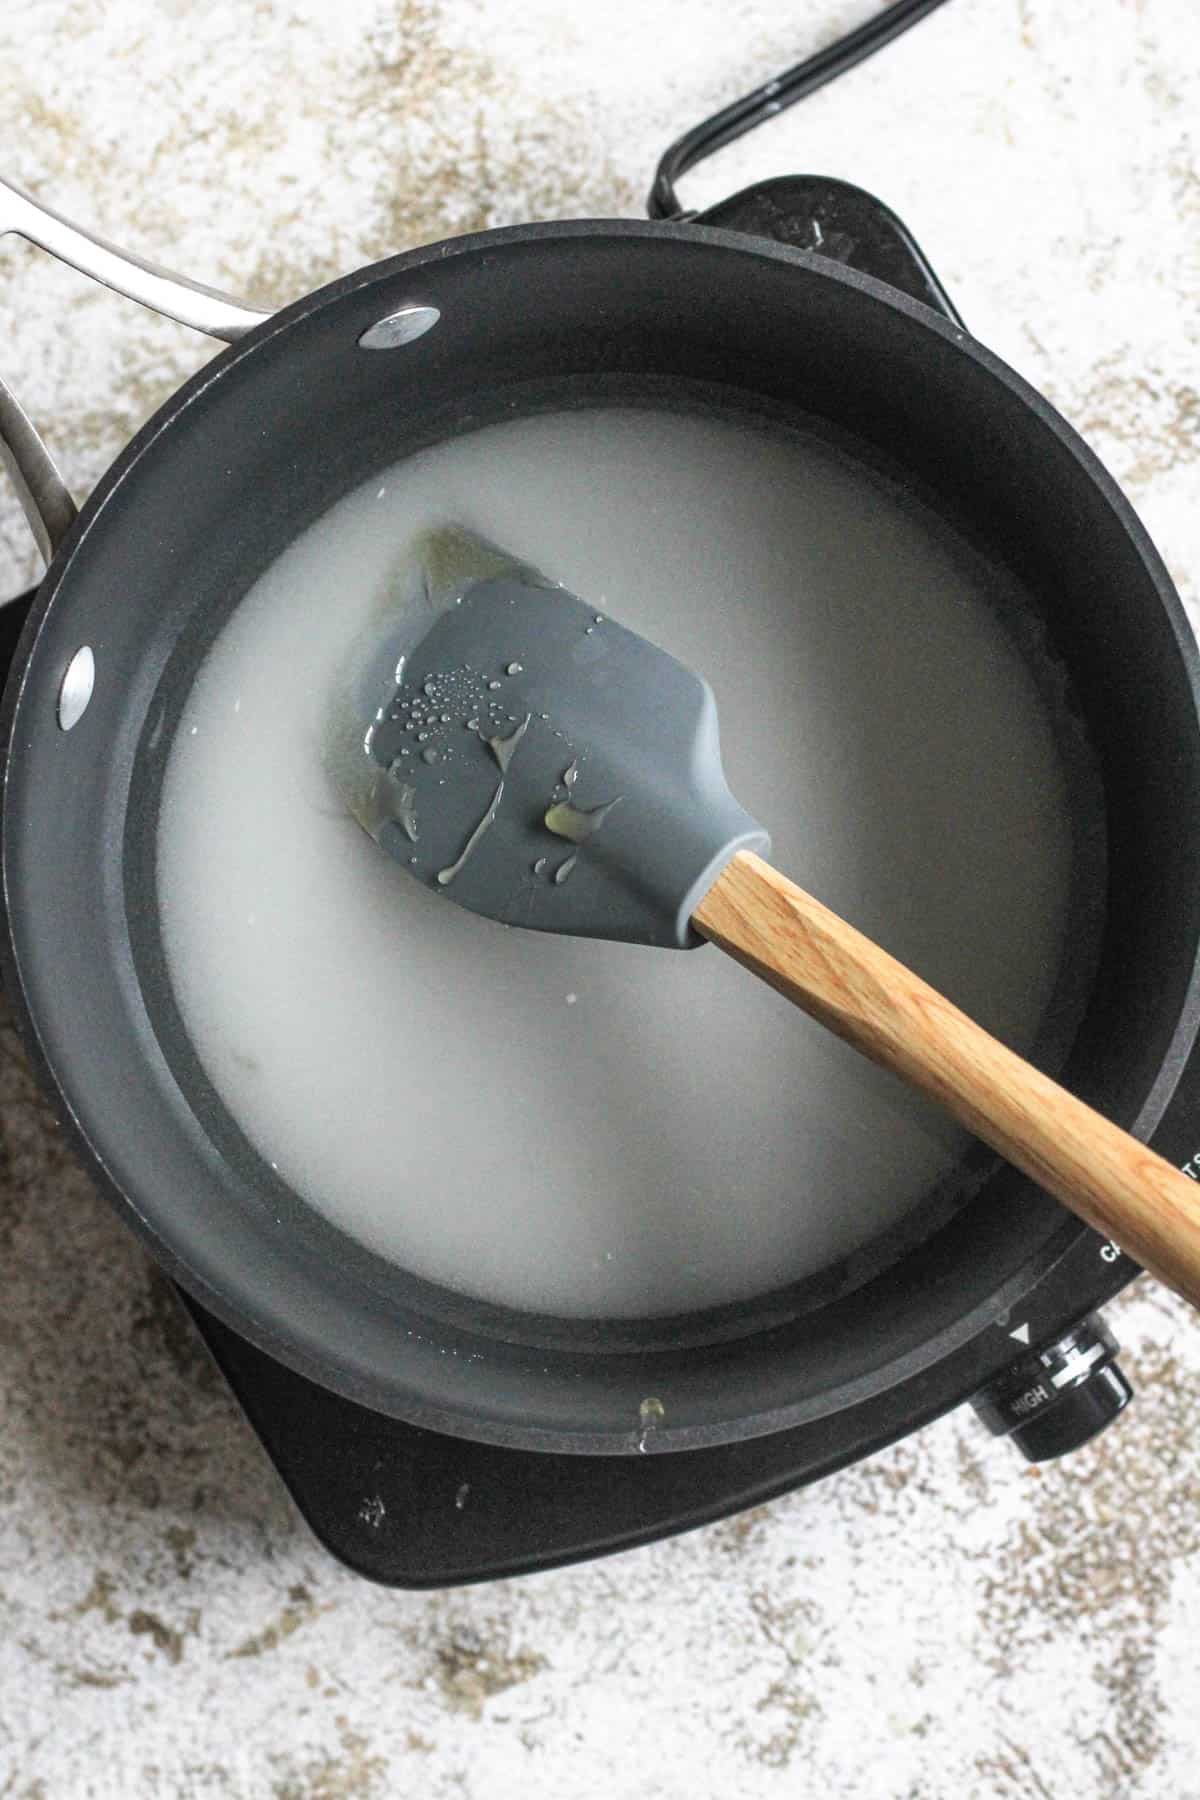 syrup cooking on the stove